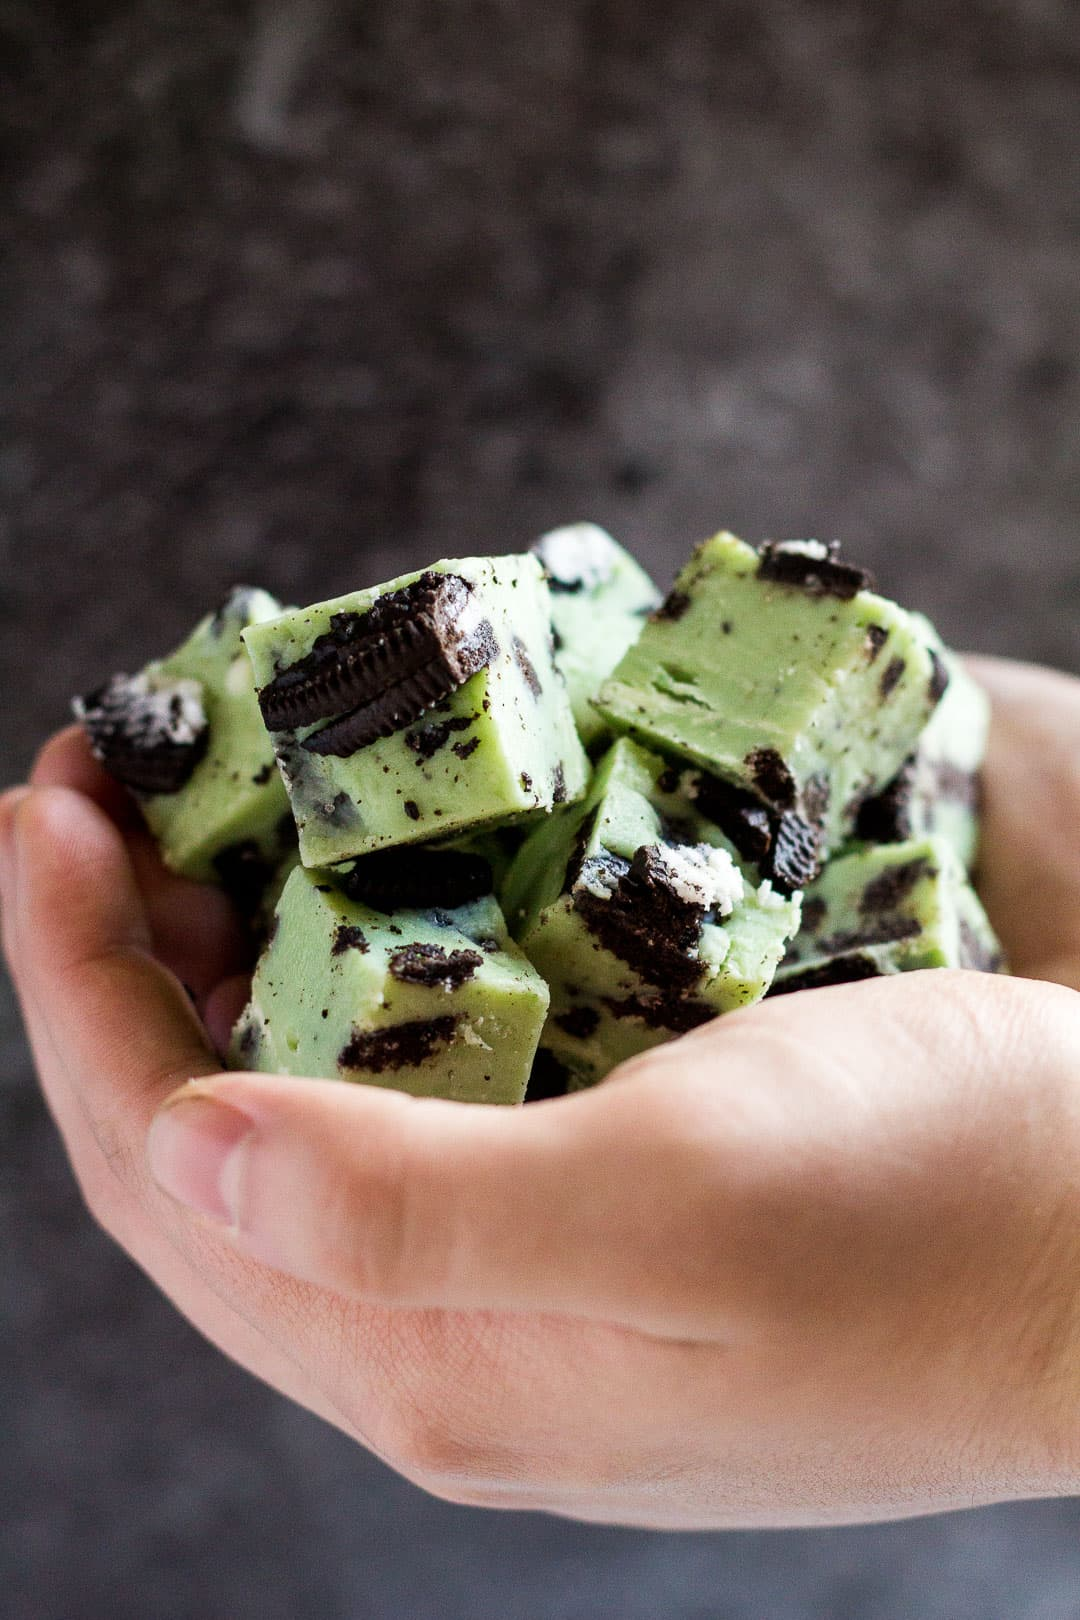 A pile of mint chocolate Oreo fudge pieces in cupped hands.